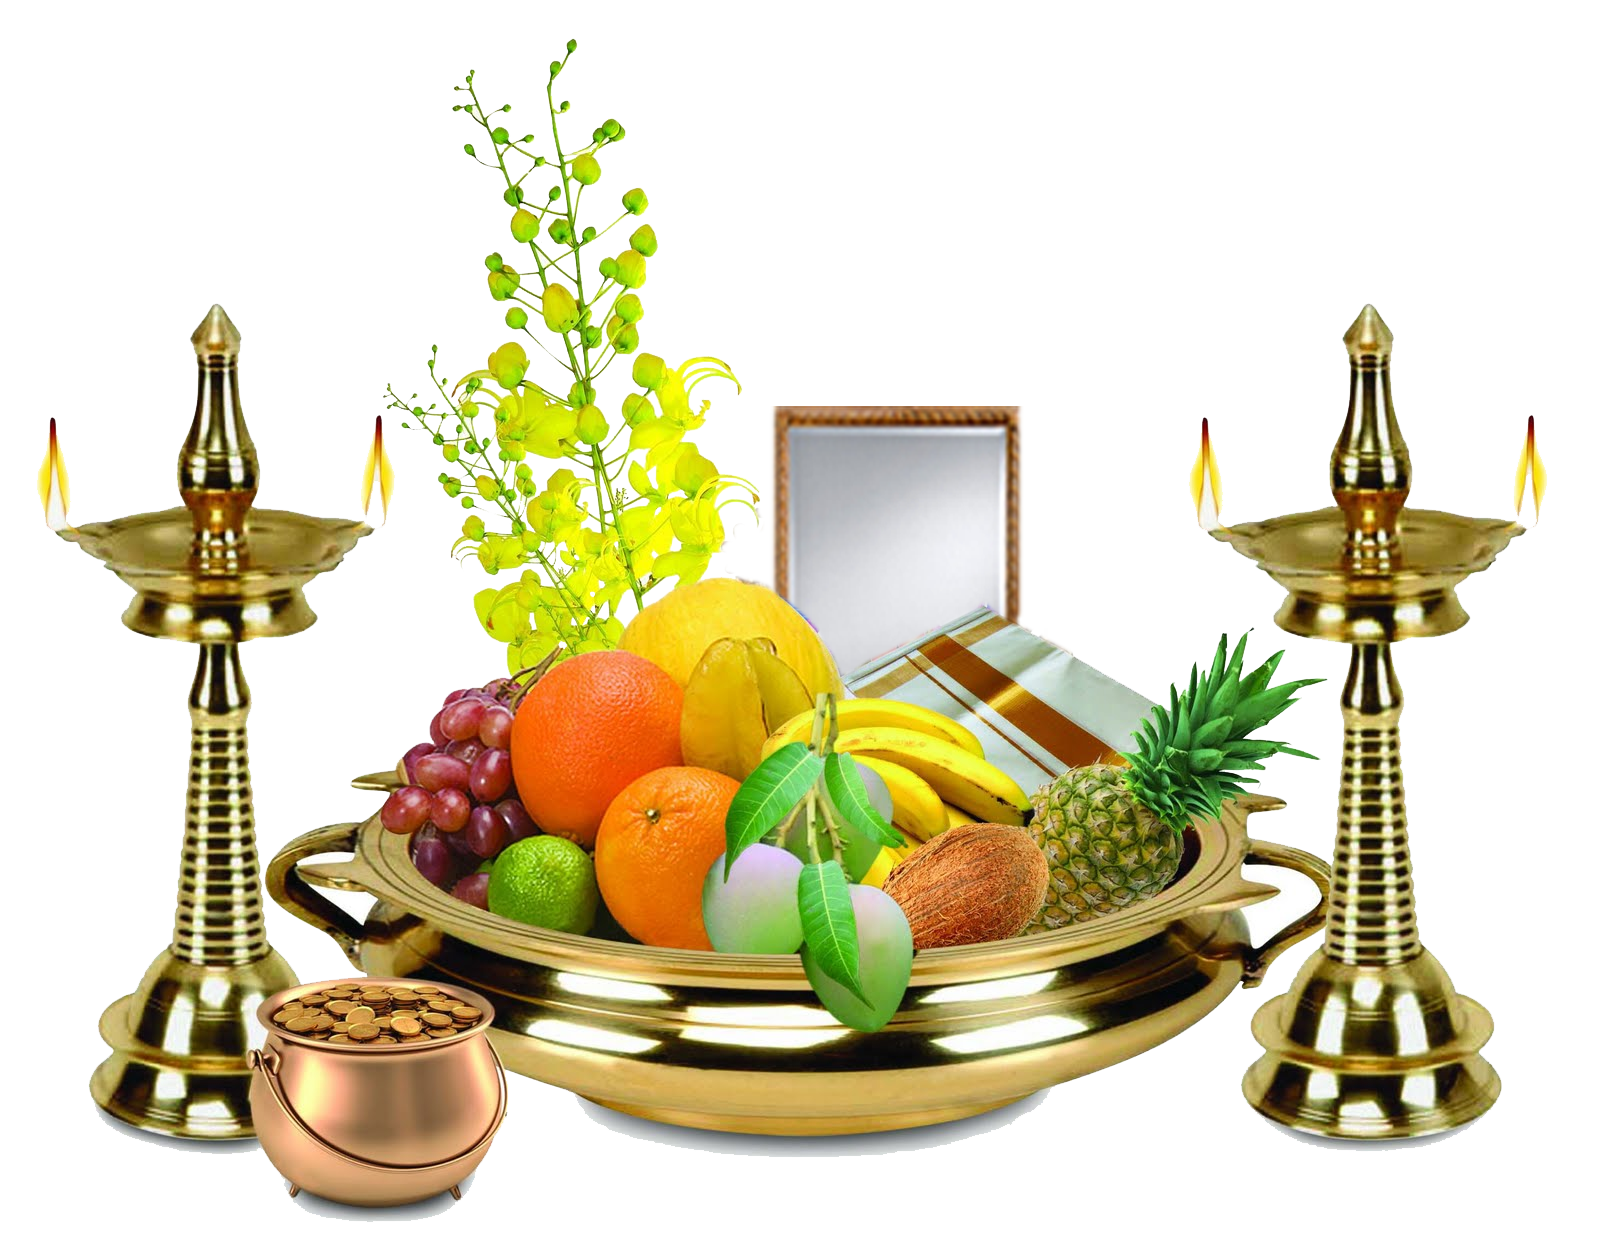 Happy Tamil New Year / Vishu | Vishu greetings, Vishu ...